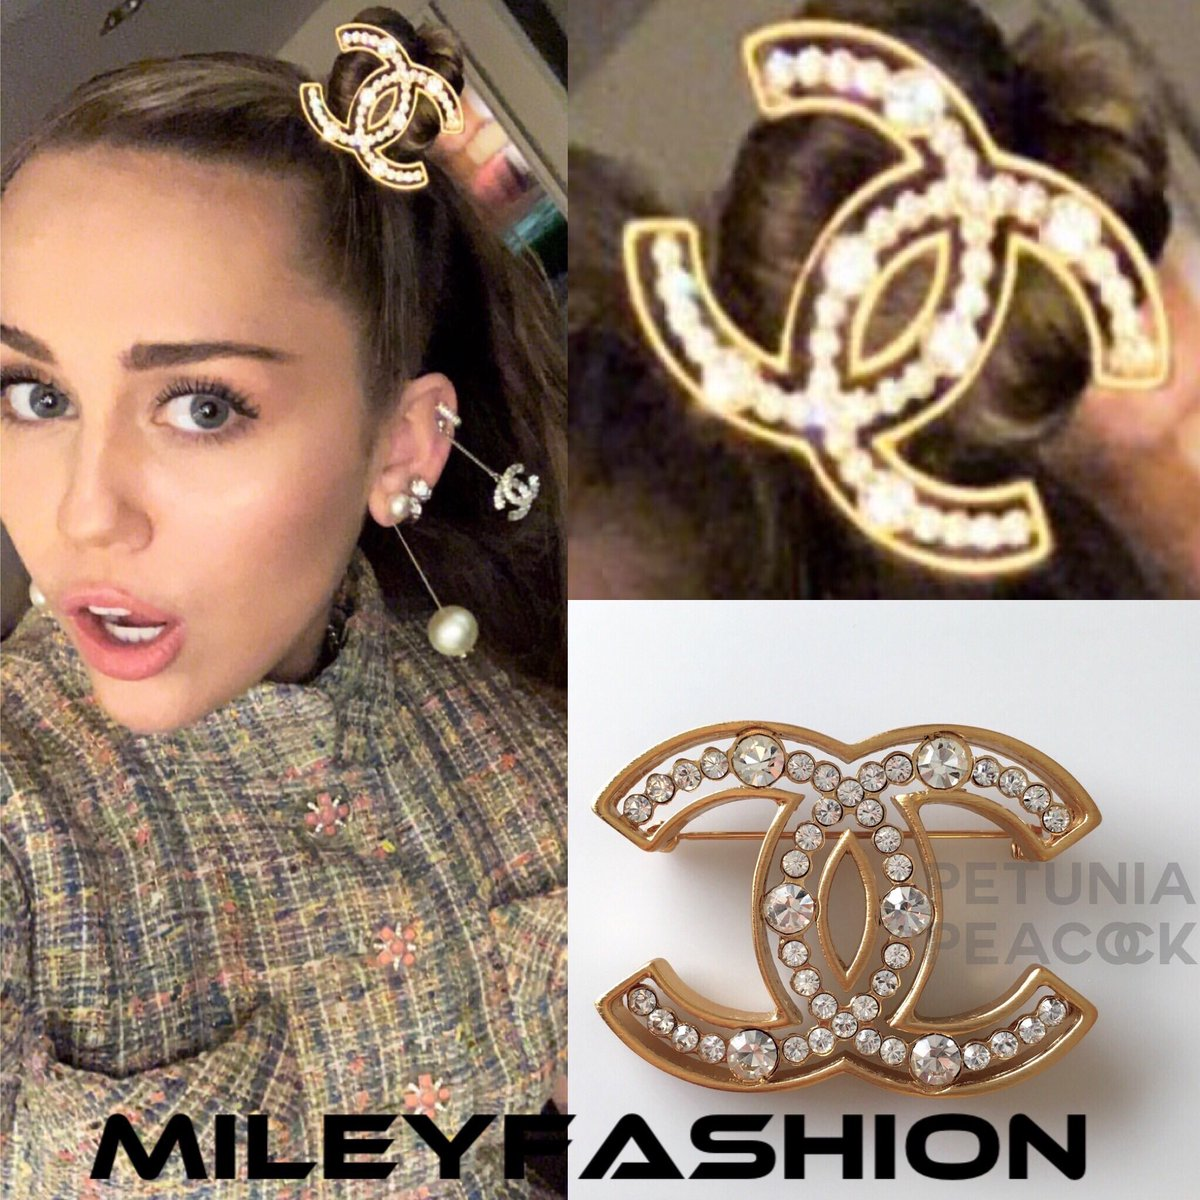 Miley Cyrus Fashion On Twitter Style Guide Mileycyrus Wore A Chanel Cc Logo Gold Crystal Embellished Brooch As A Hair Accessory In A Photo That She Posted On Her Insta Stories Tonight